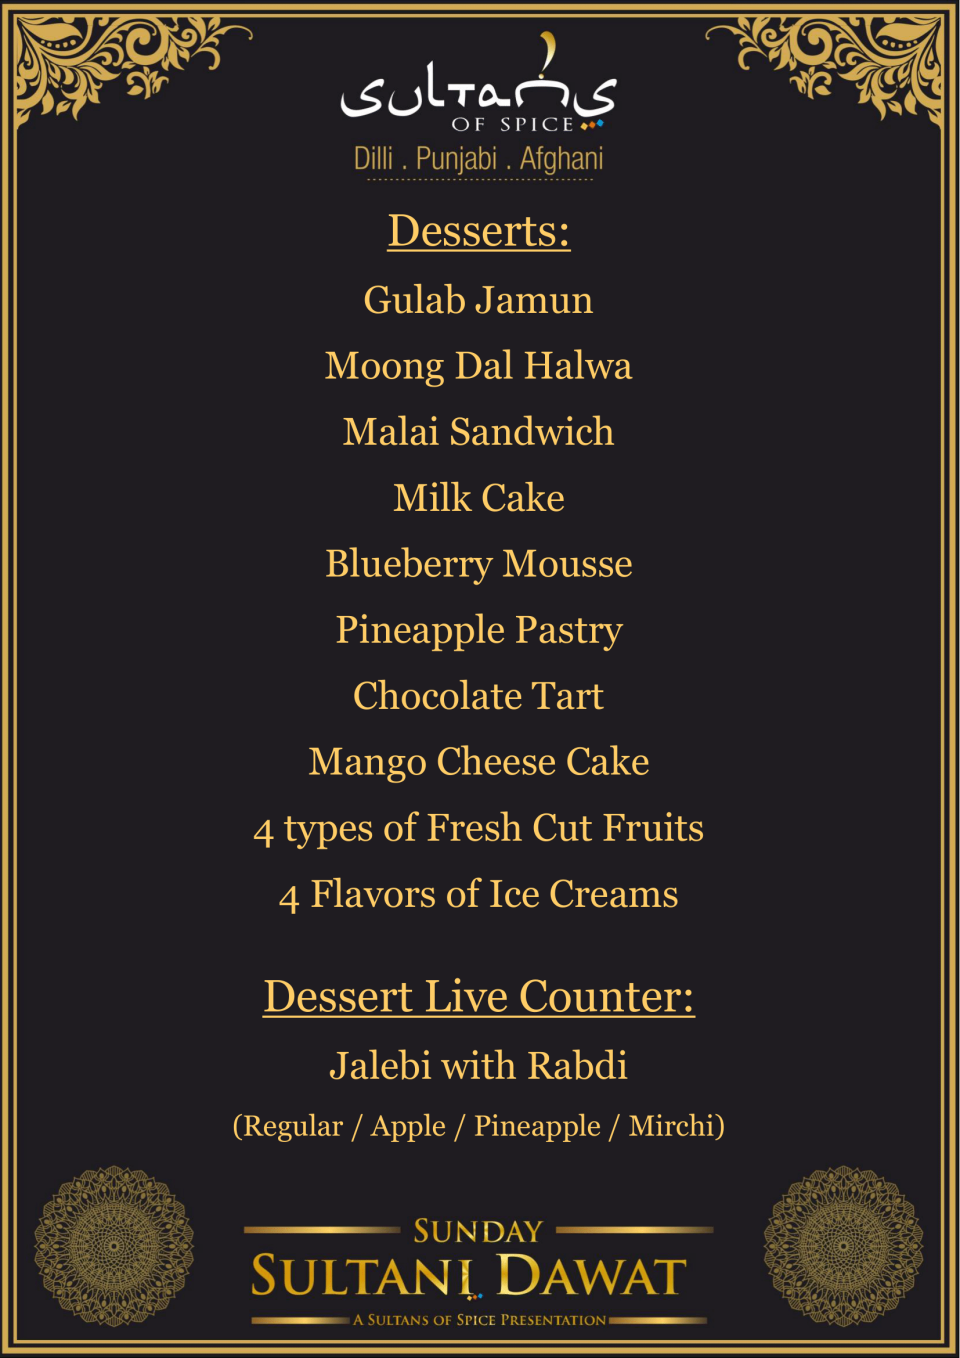 SAMPLE MENU SUNDAY SULTANI DAWAT AUG 2019 mdg02n-5